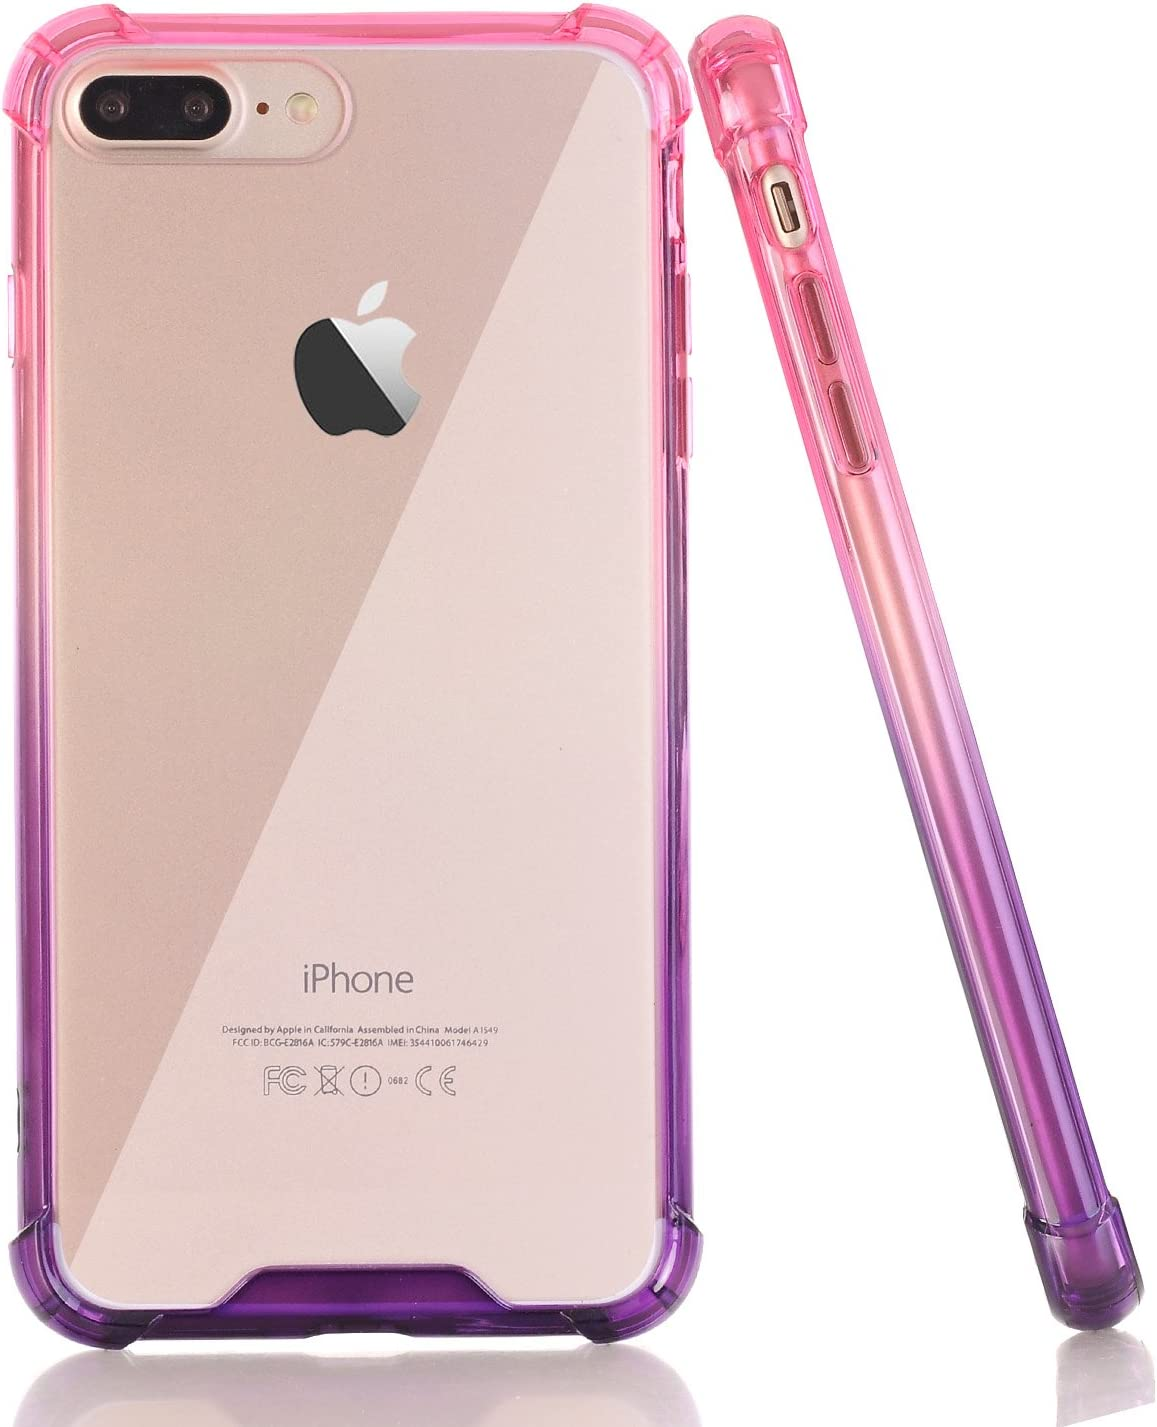 BAISRKE Clear Case for iPhone 7 Plus, Slim Shock Absorption Protective Case Soft TPU Bumper & Hard Plastic Back Cover Phone Cases for iPhone 7 Plus / 8 Plus 5.5 inch - Pink Purple Gradient